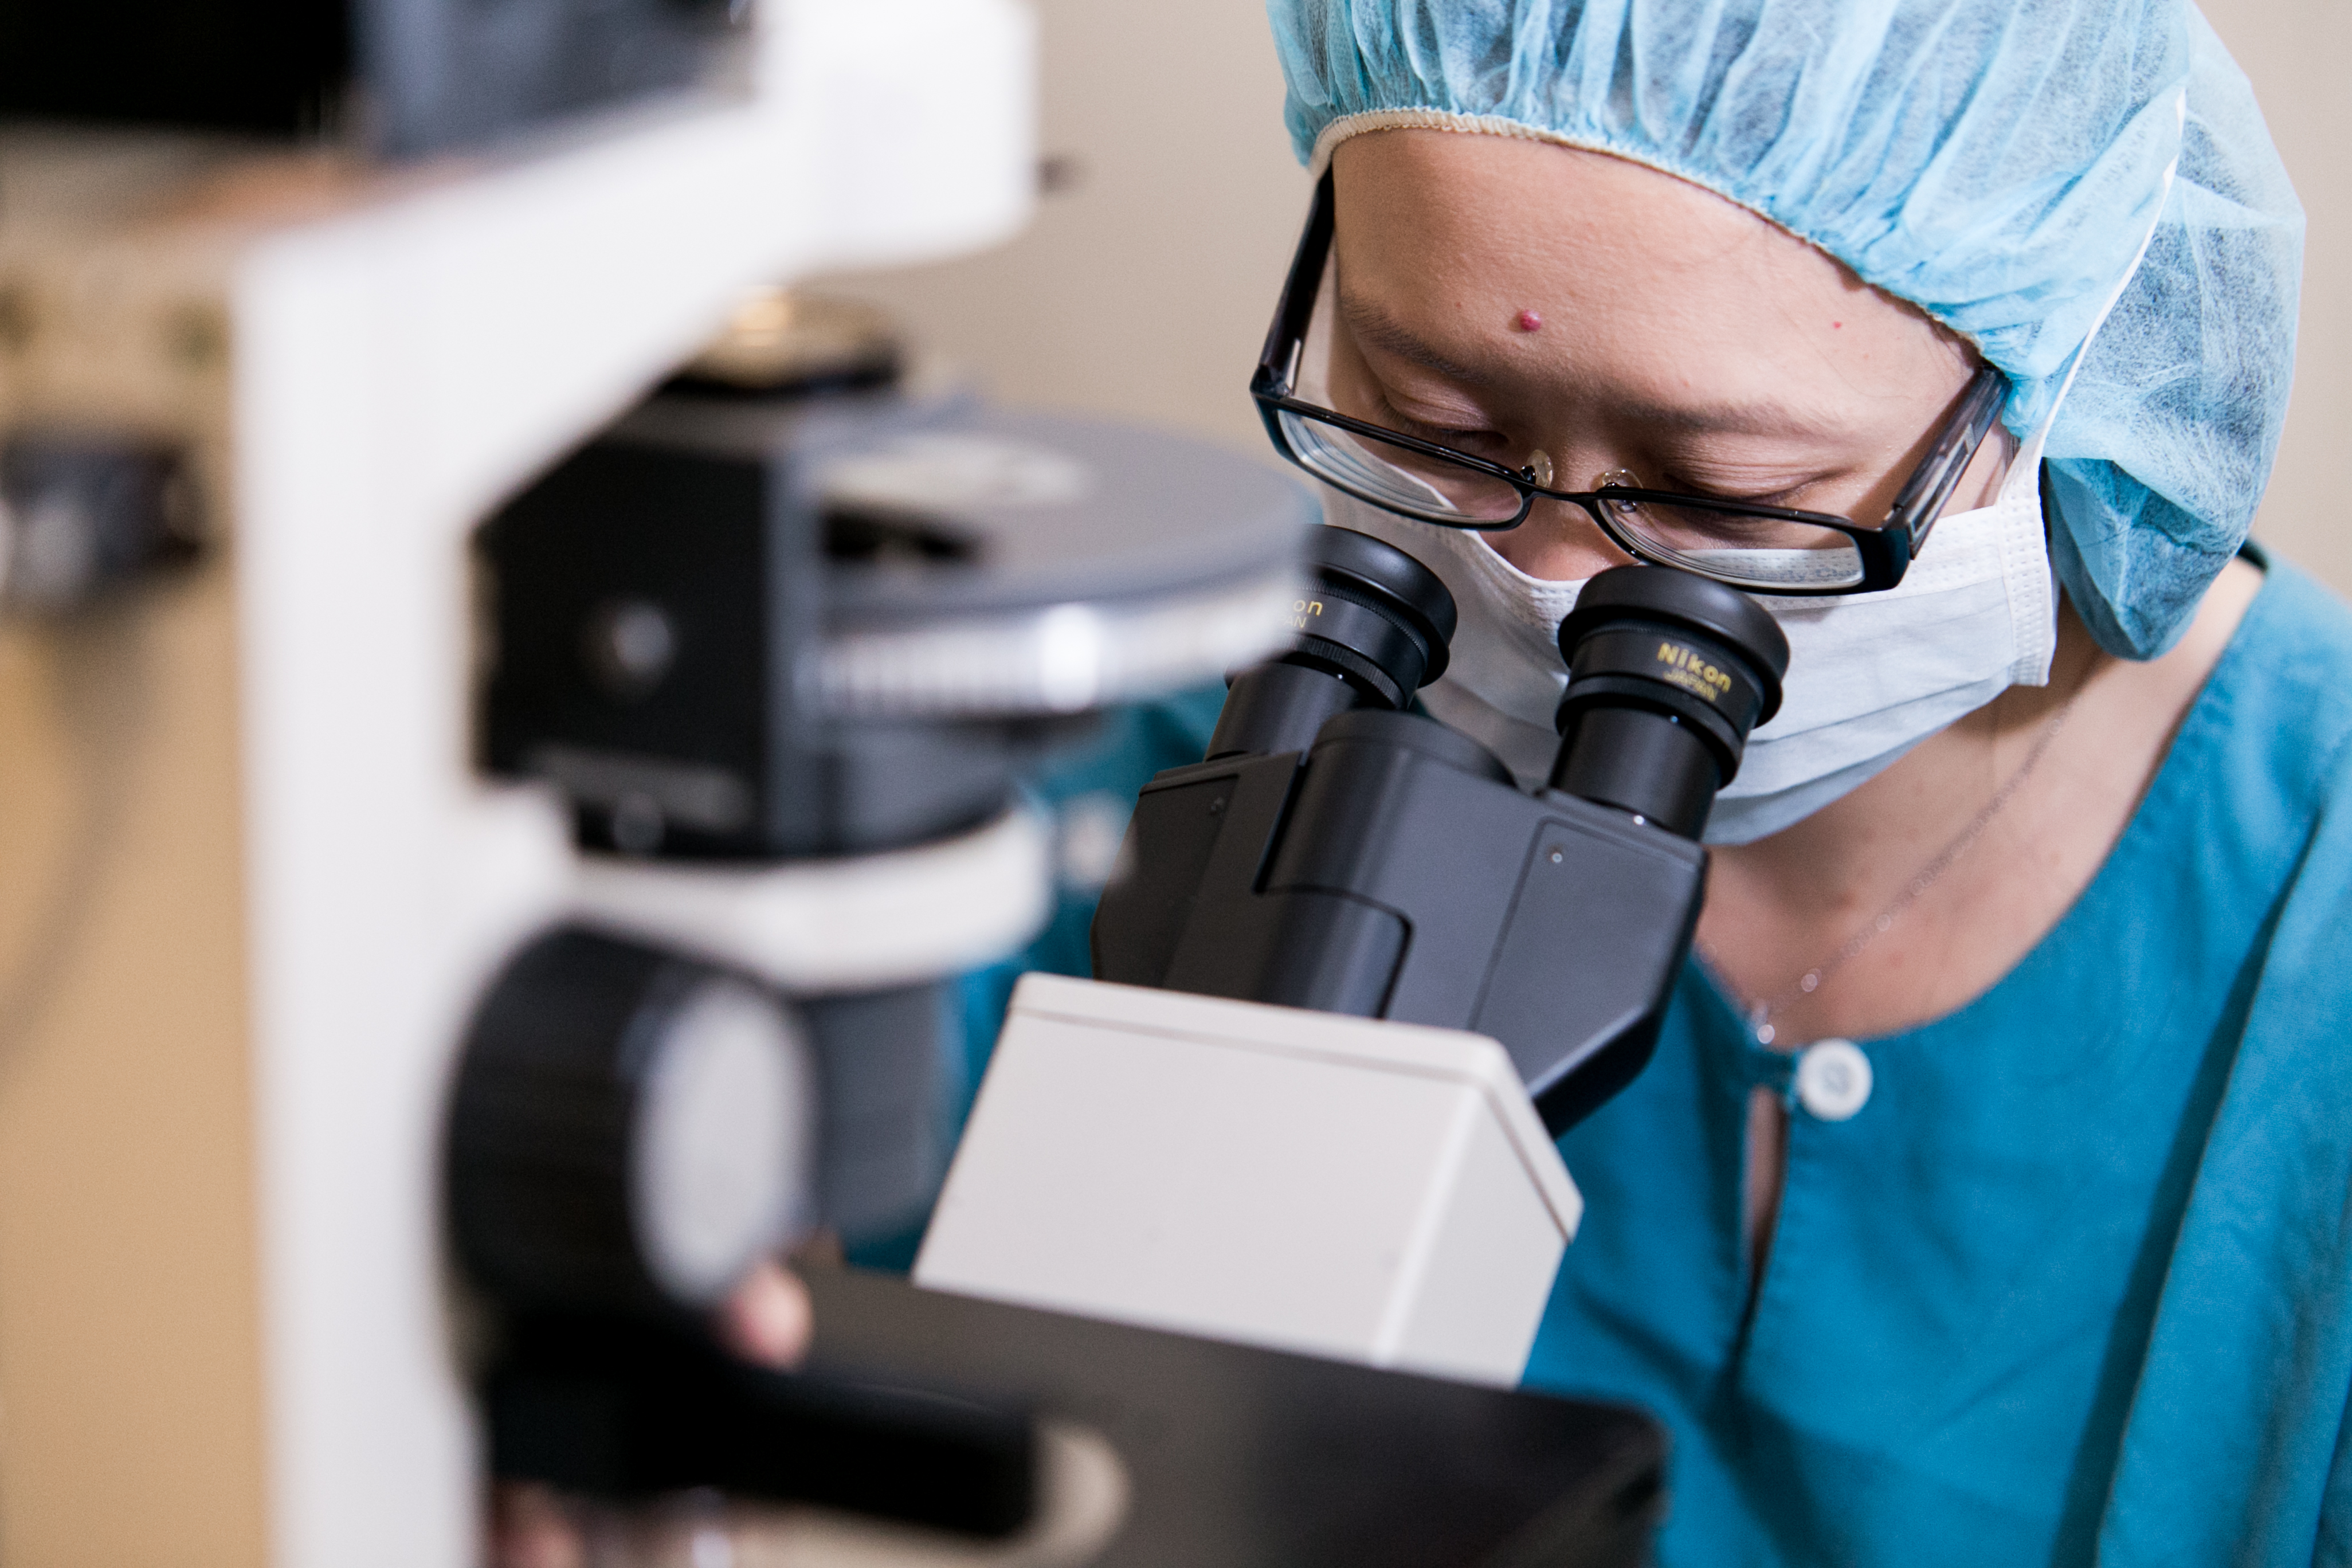 Doctor uses microscope to check for cancer cells in biopsy